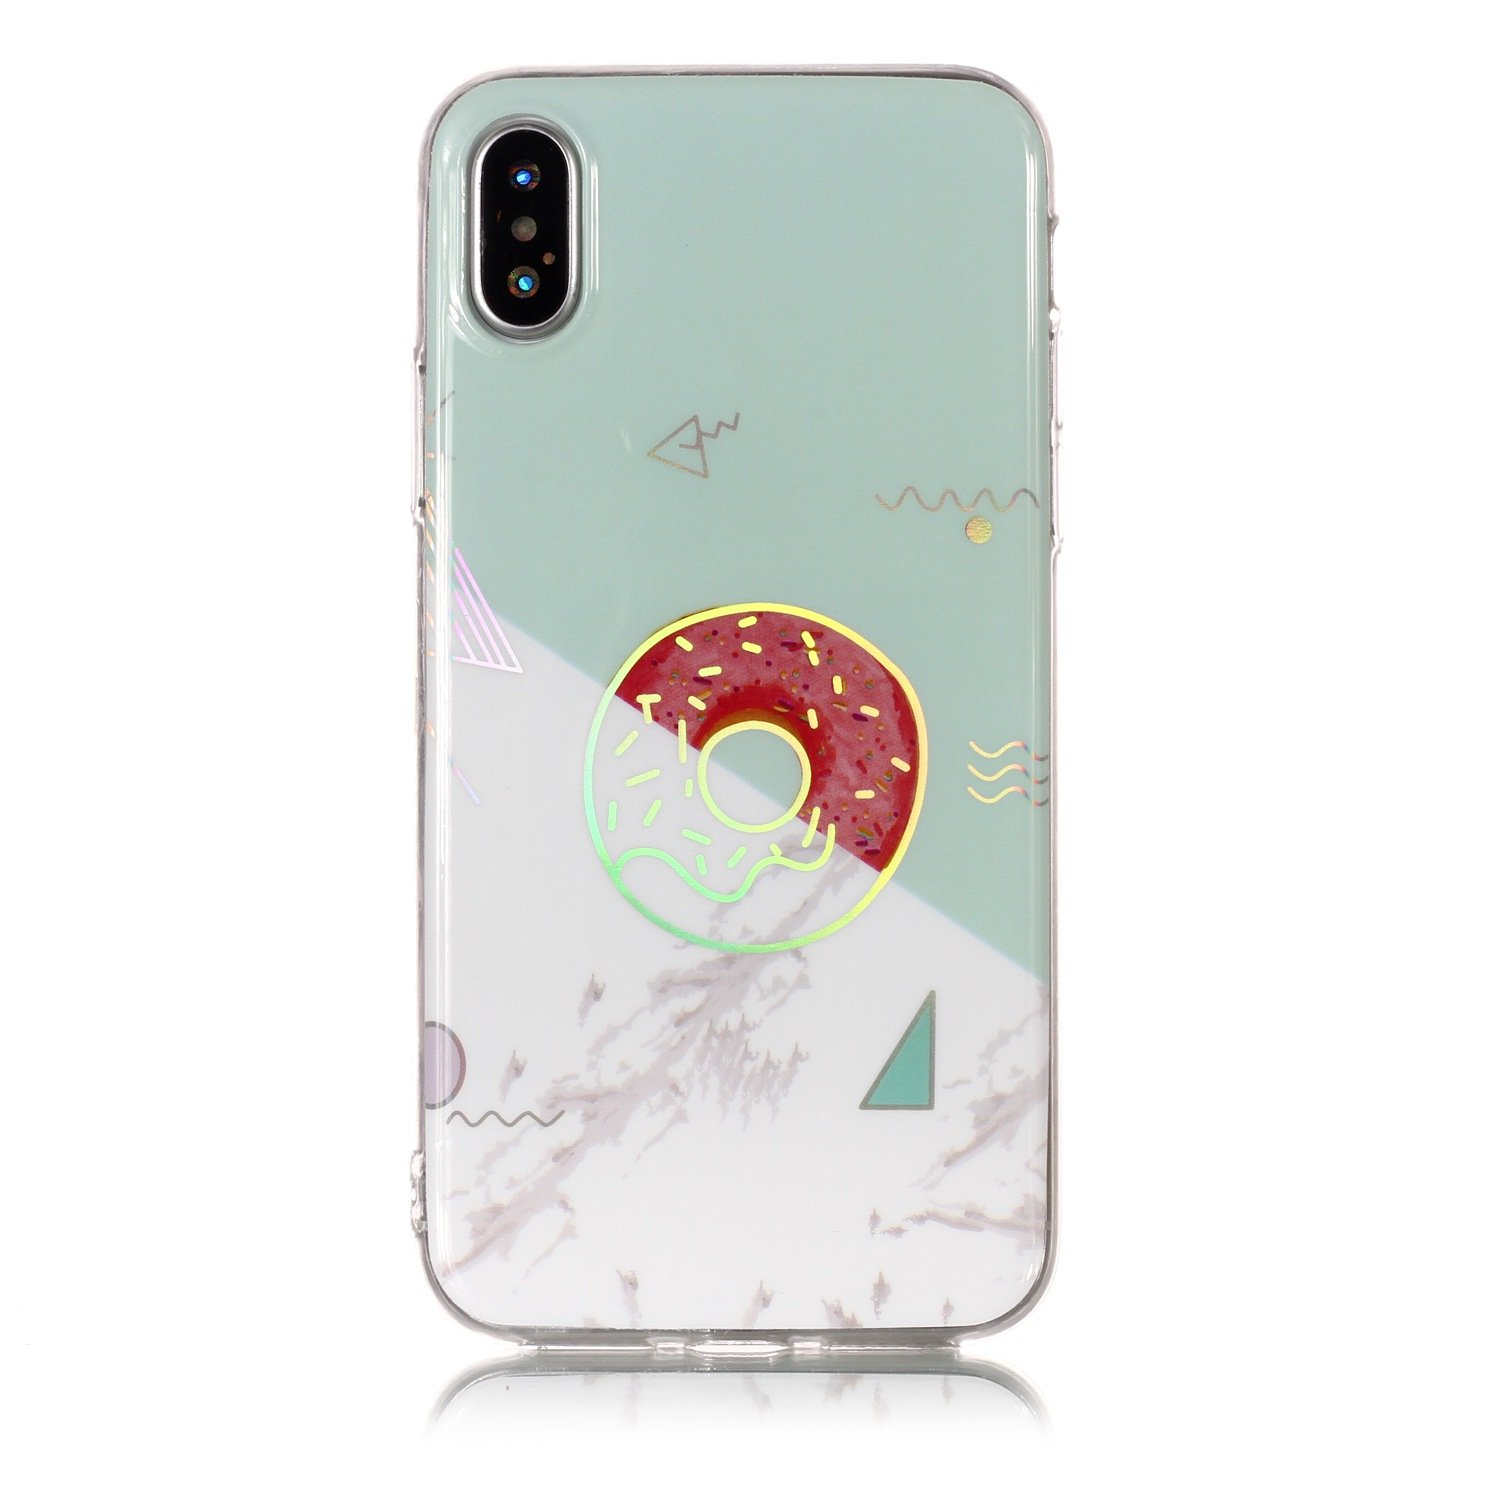 Cover for iPhone X,iPhone XS Case,BtDuck Silicone Case Marble Pattern Phone Case Transparent Clear Cover Glitter Case Shockproof Shell Soft Gel Case TPU Back Cover Bumper Phone Protective with Laser Design Crystal Clear Case Protective Rubber Cover for iP